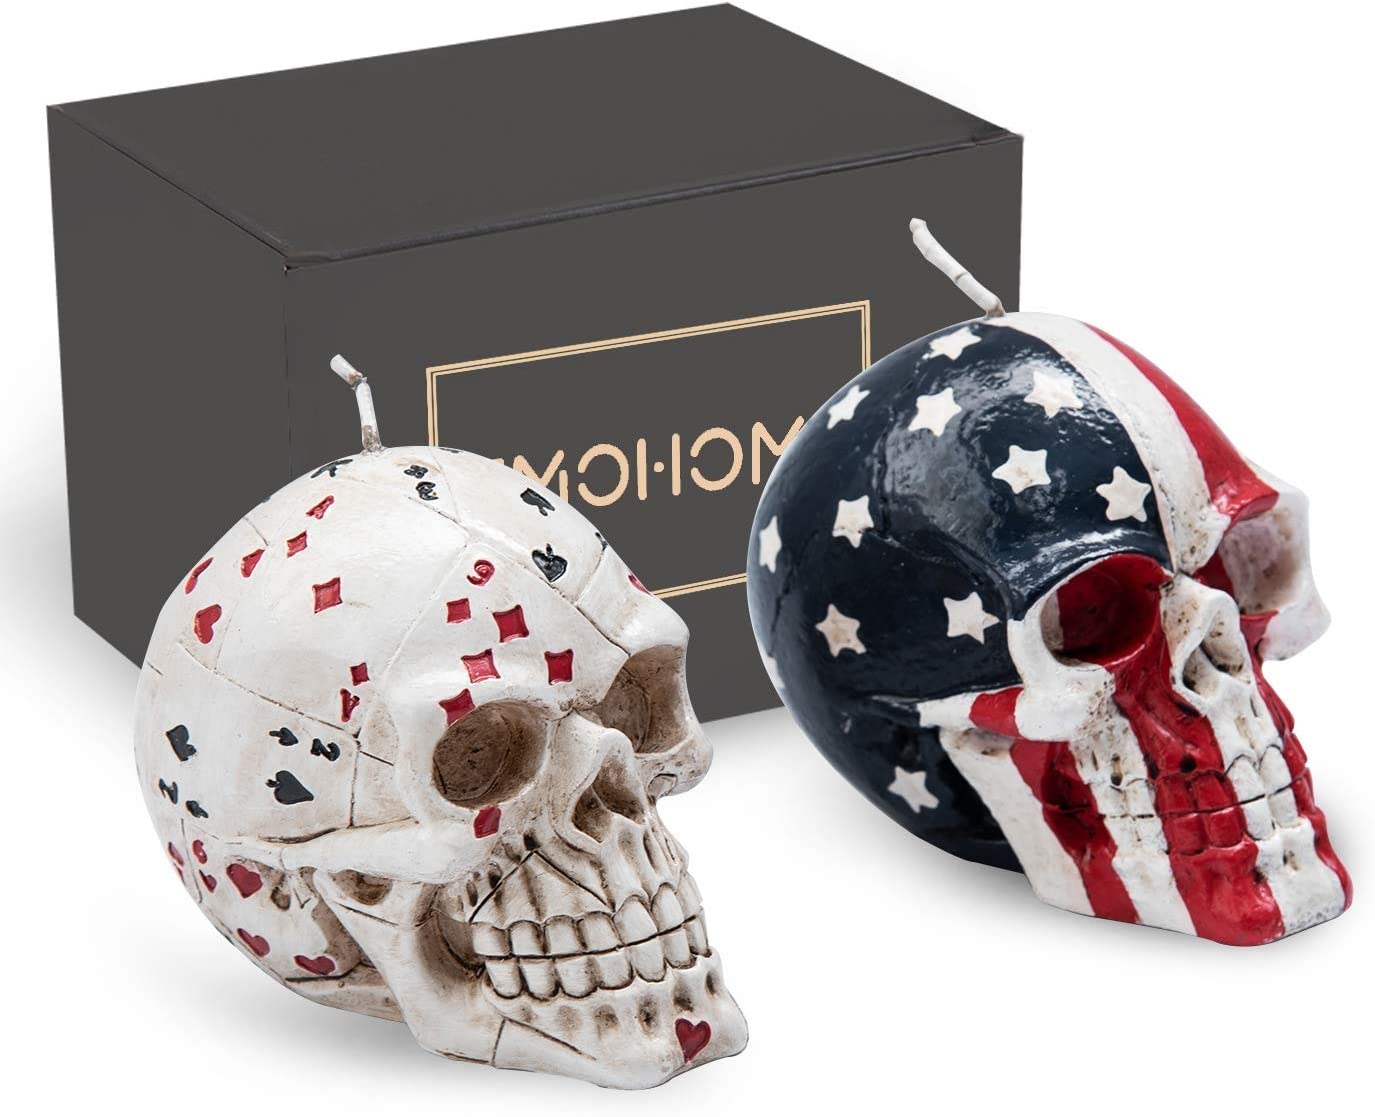 EMOHOME 2PCS American Flag Skull and Poker Skull Statue, Patriot, Decorative Candles for Casino Party Decorations, Halloween, Horror, Home Décor, Birthday Party, Festival, Novelty Gifts